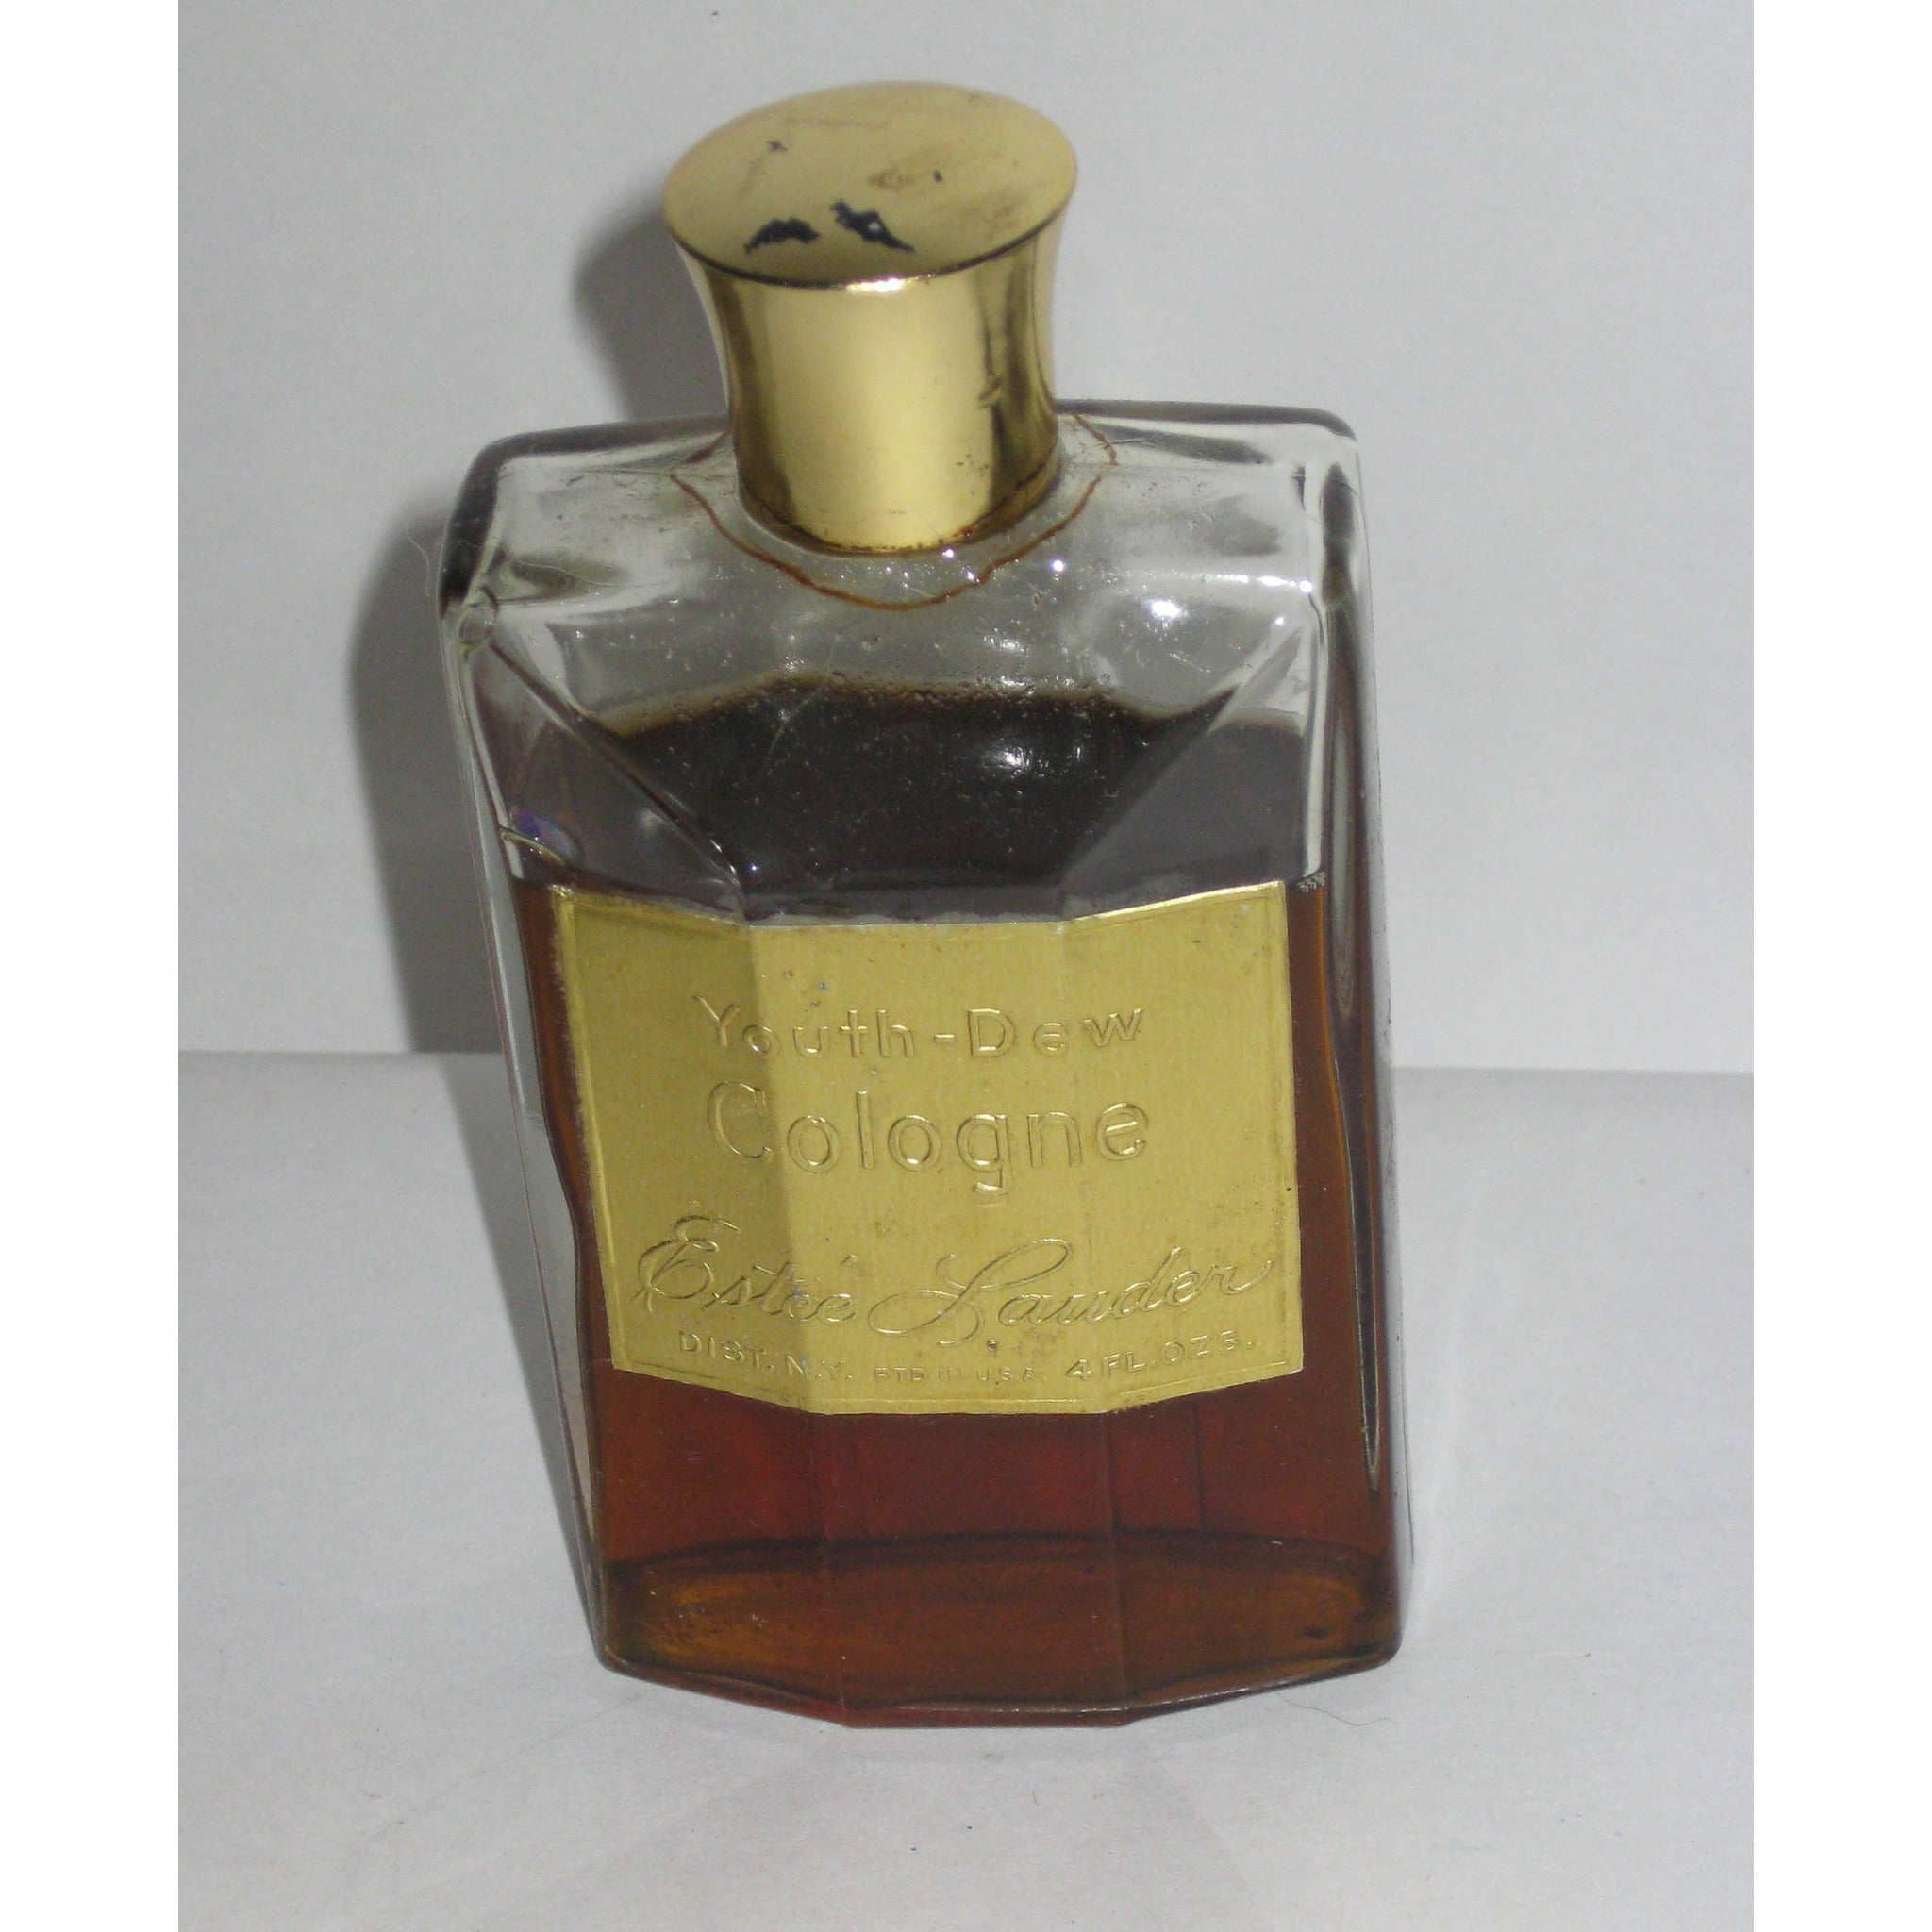 Vintage Youth Dew Cologne By Estee Lauder